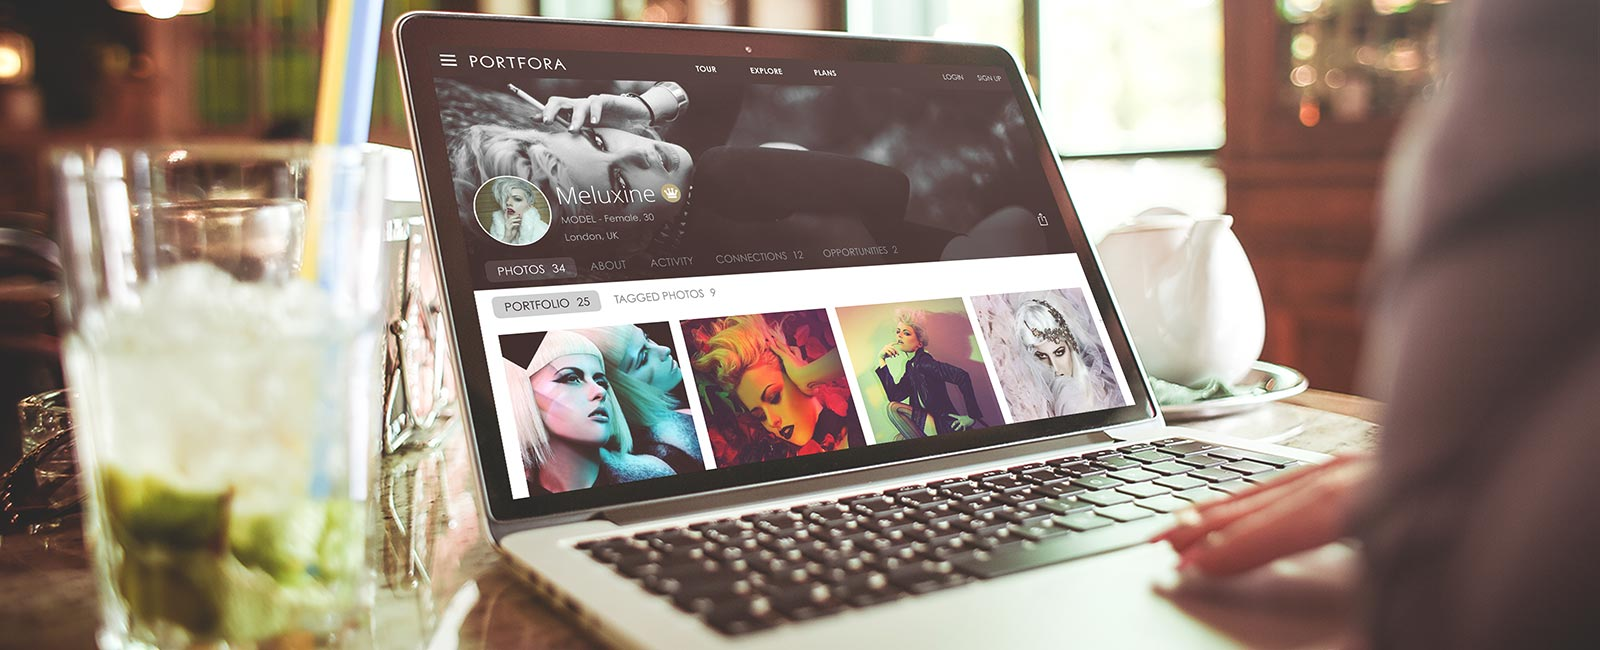 Online portfolio hosting for photographers, models, fashion designers, MUAs, stylists